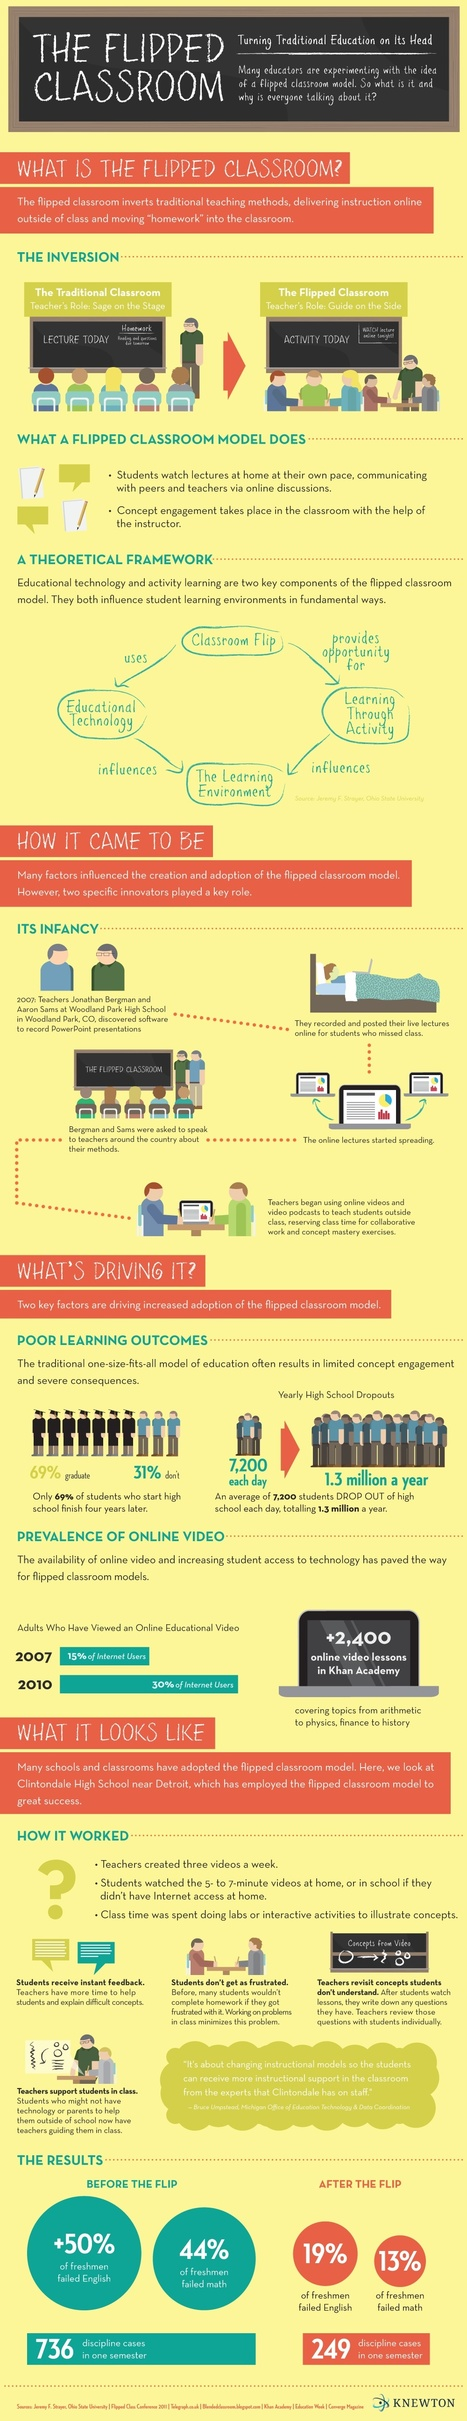 The Teacher's Guide To Flipped Classrooms - Edudemic | Flipping | Scoop.it